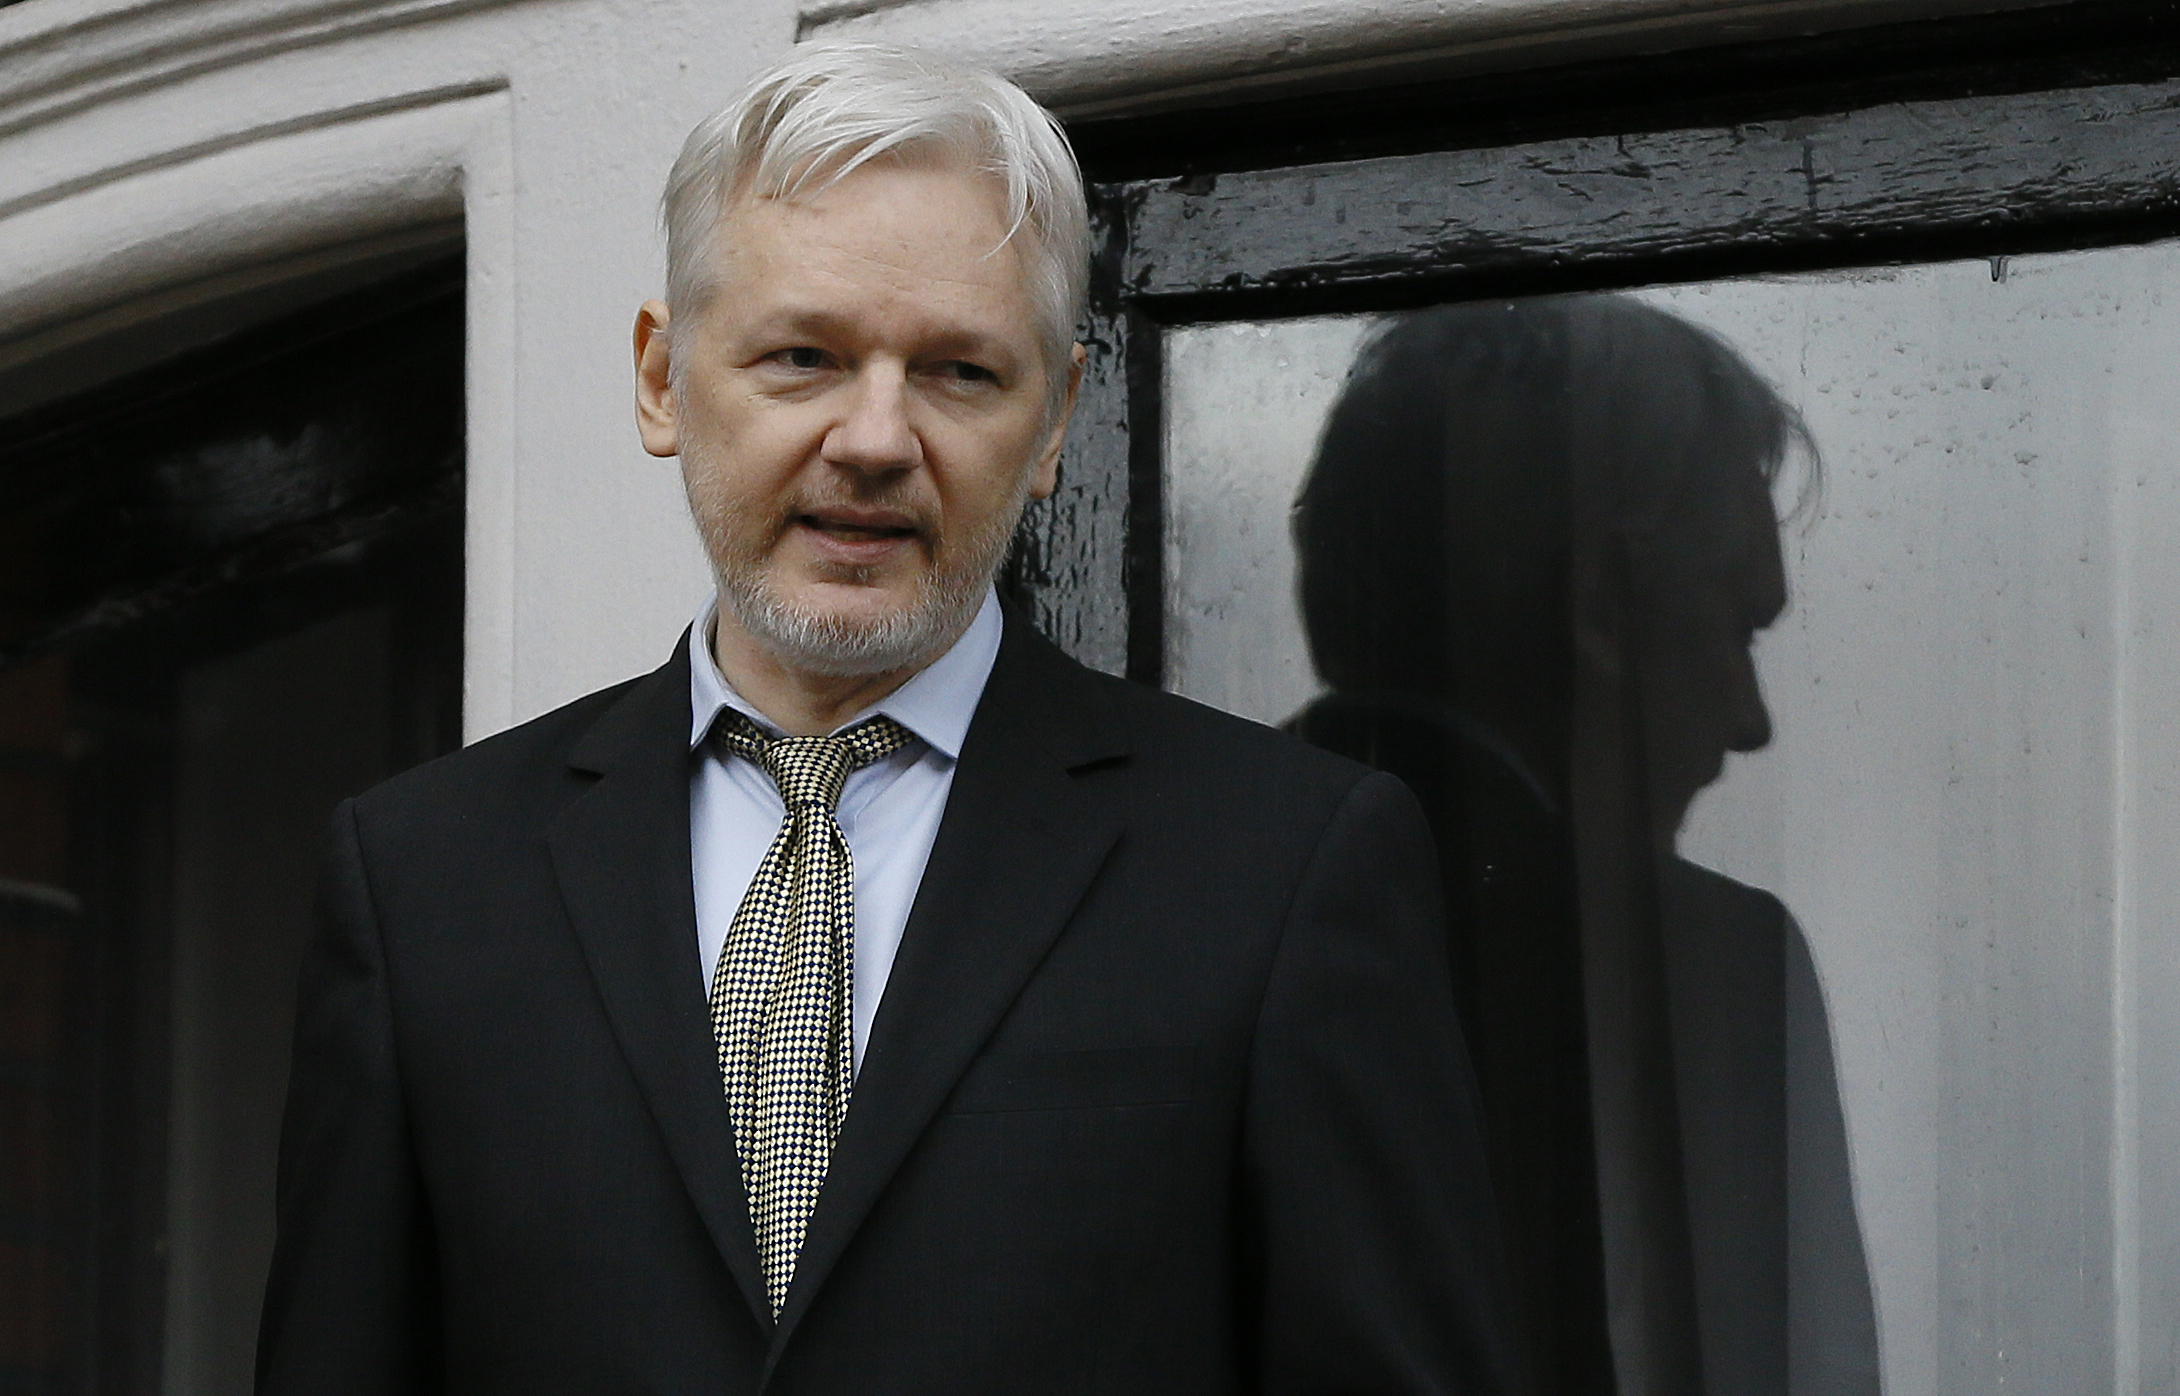 Britain Julian Assange Photo by Kirsty Wigglesworth, AP Photo_295591